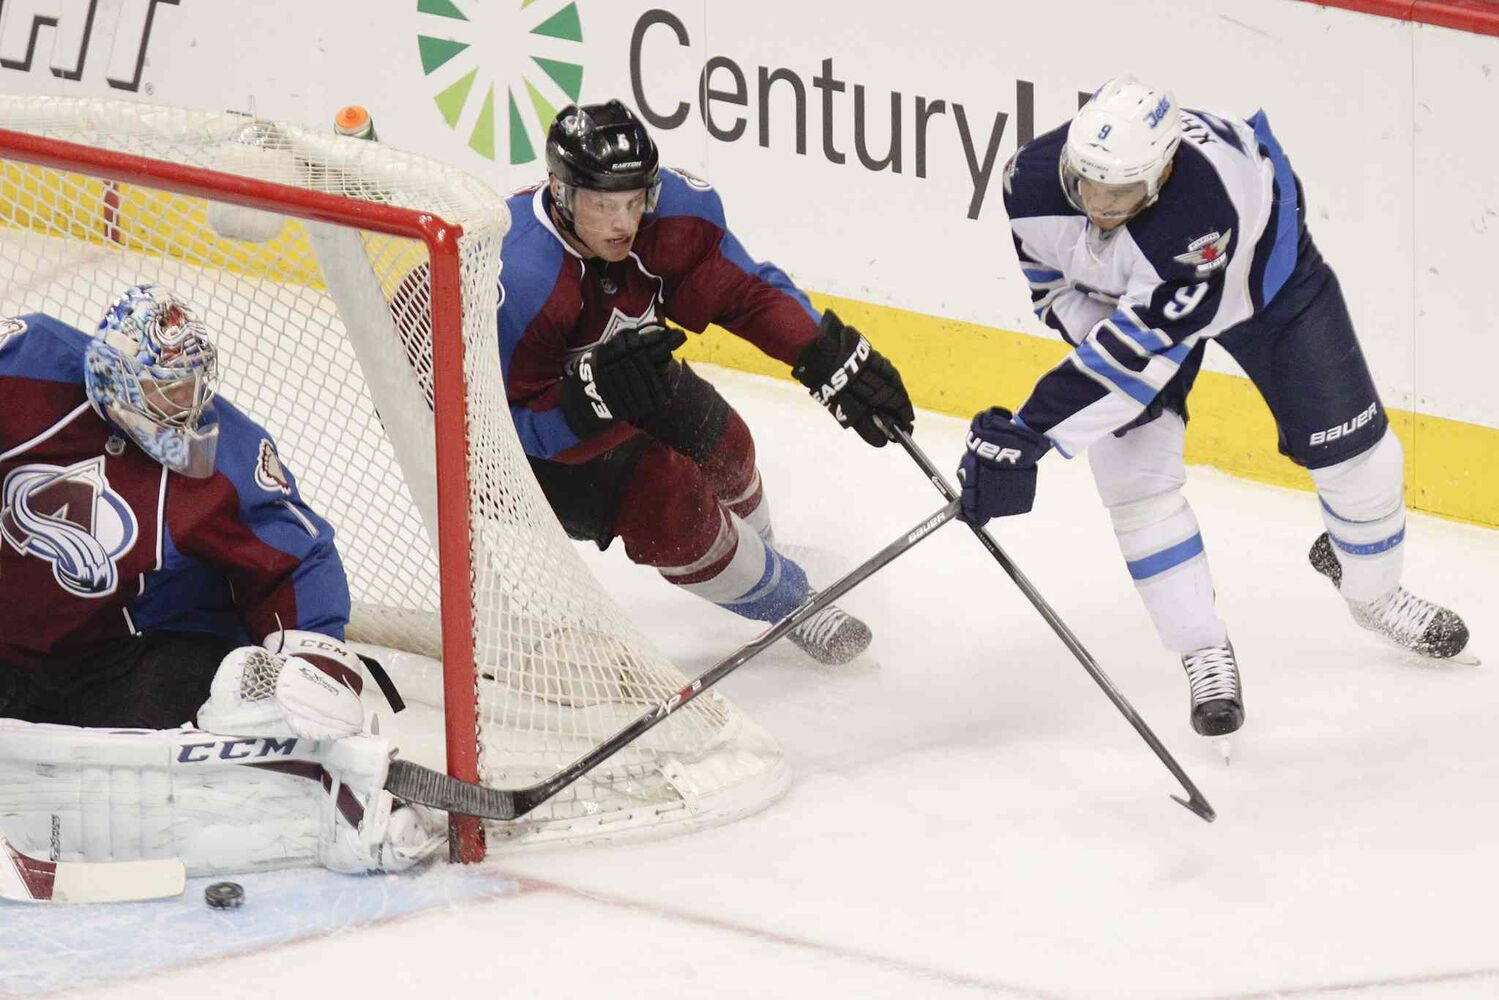 Winnipeg Jets forward Evander Kane tries a wraparound against Colorado Avalanche goalie Semyon Varlamov.